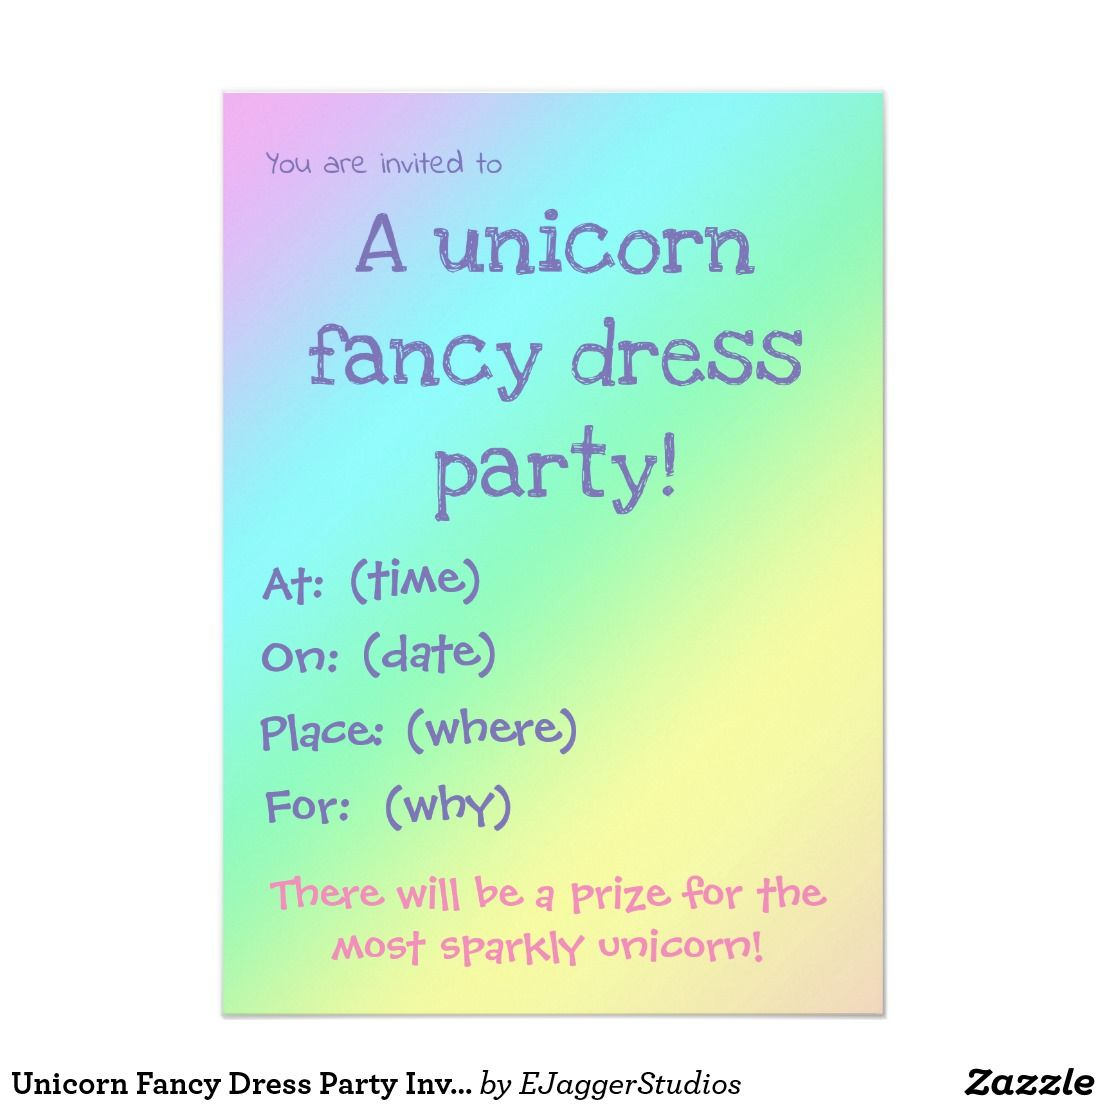 Unicorn Fancy Dress Party Invitation | Unicorn fancy dress, Party ...